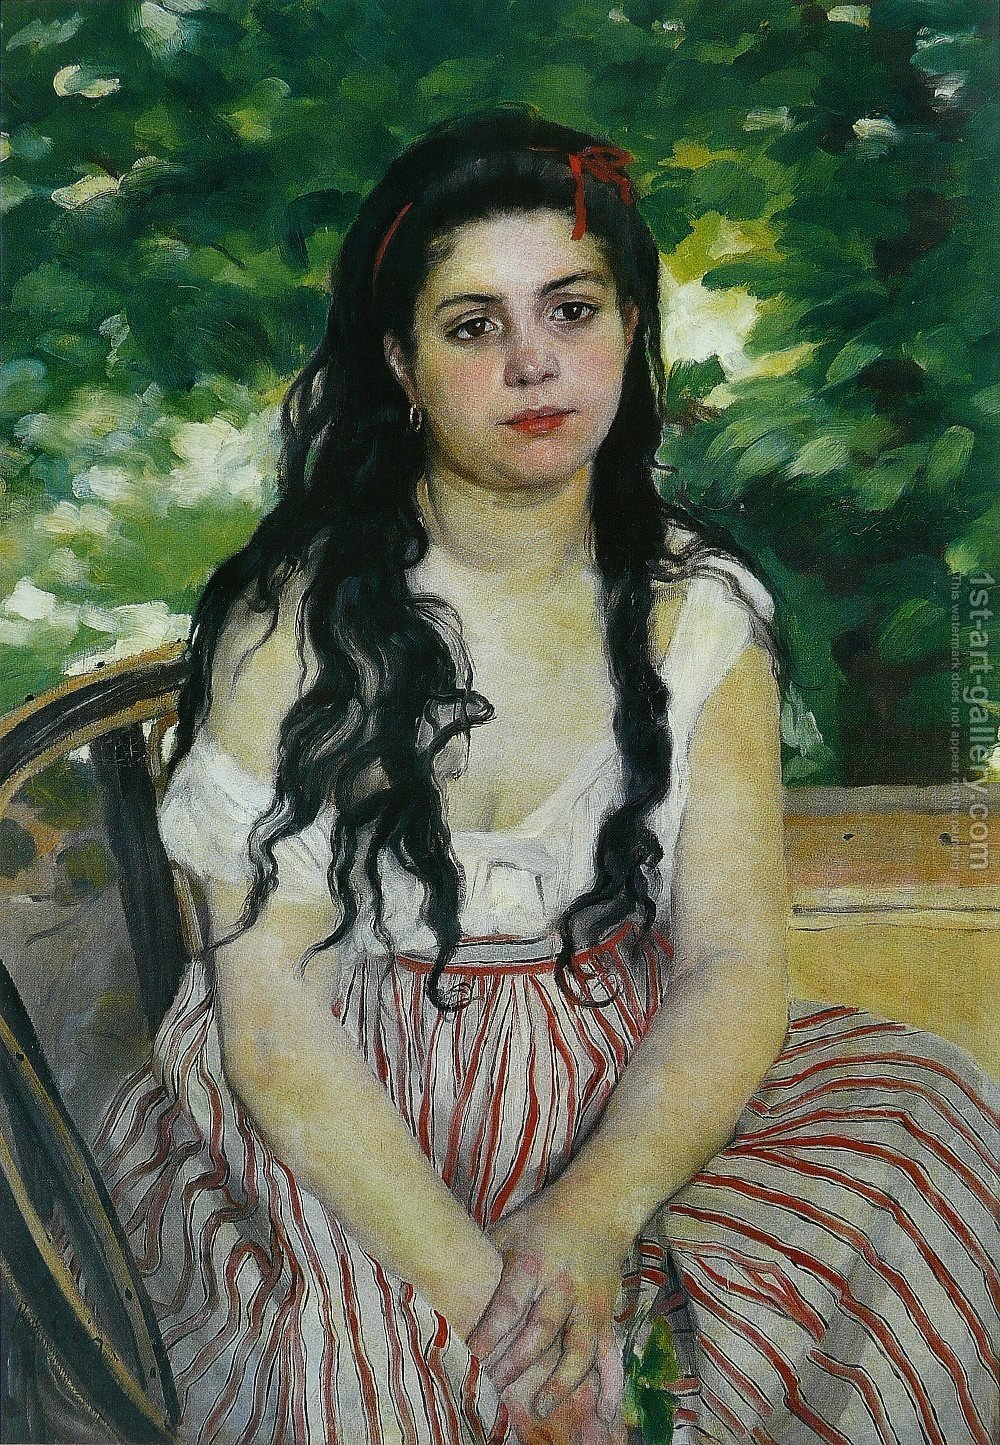 A gypsy girl named michelle 6